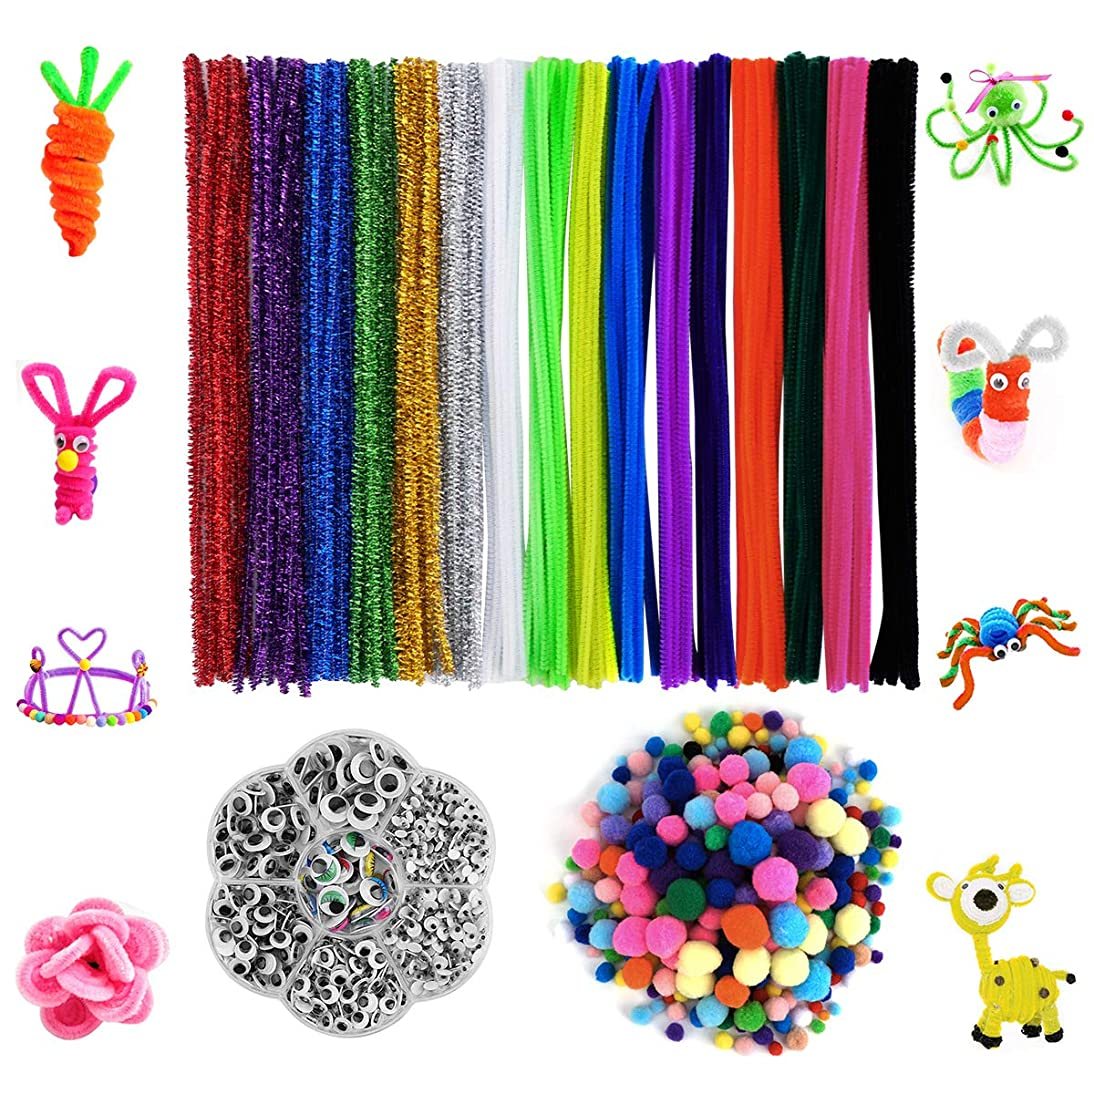 Cuttte 1220 Pieces Pipe Cleaners Set, Including 160 Pieces 16 Colors Pipe Cleaners, 360 Pieces 6 Size Pom Poms and 700 Pieces 6 Size Wiggle Googly Eyes for Craft DIY Art Supplies